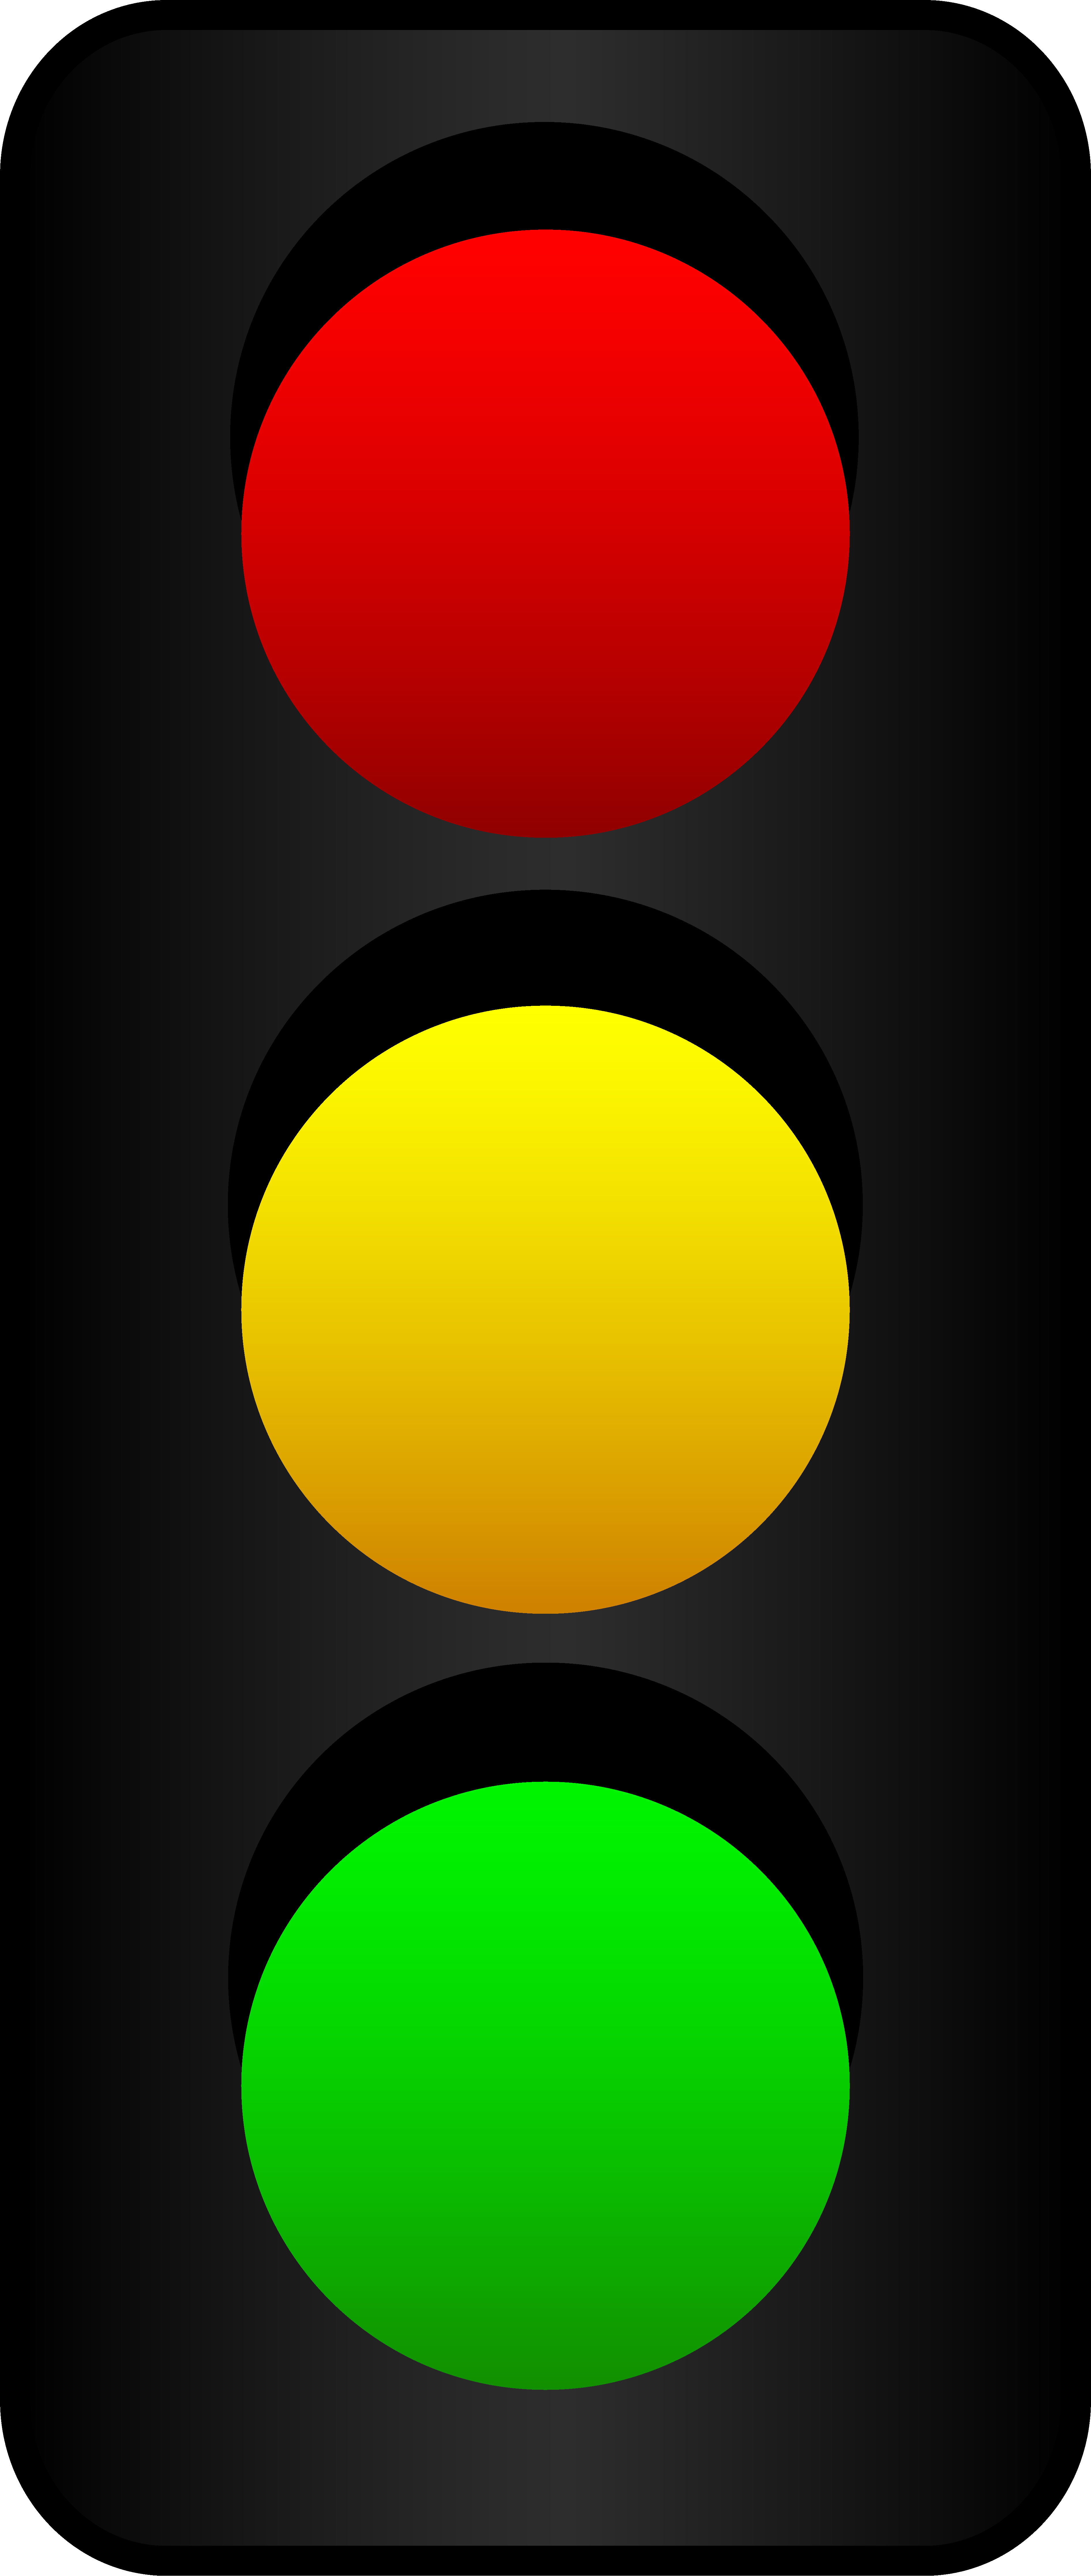 Free Cartoon Traffic Light, Download Free Clip Art, Free.